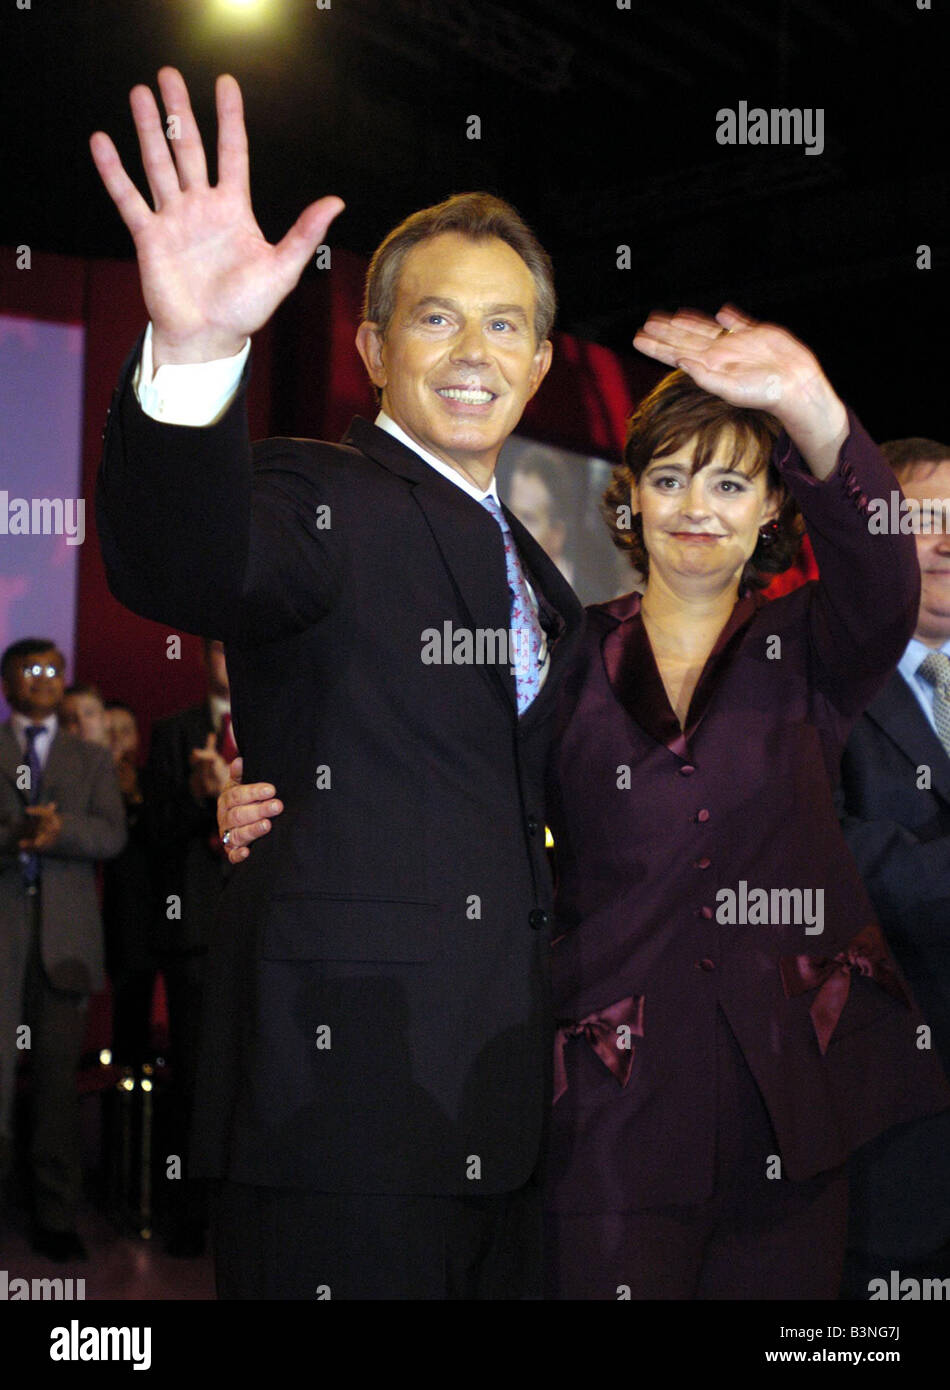 Labour Party Conference Tony Blair and Cherie Blair September 2004 - Stock Image